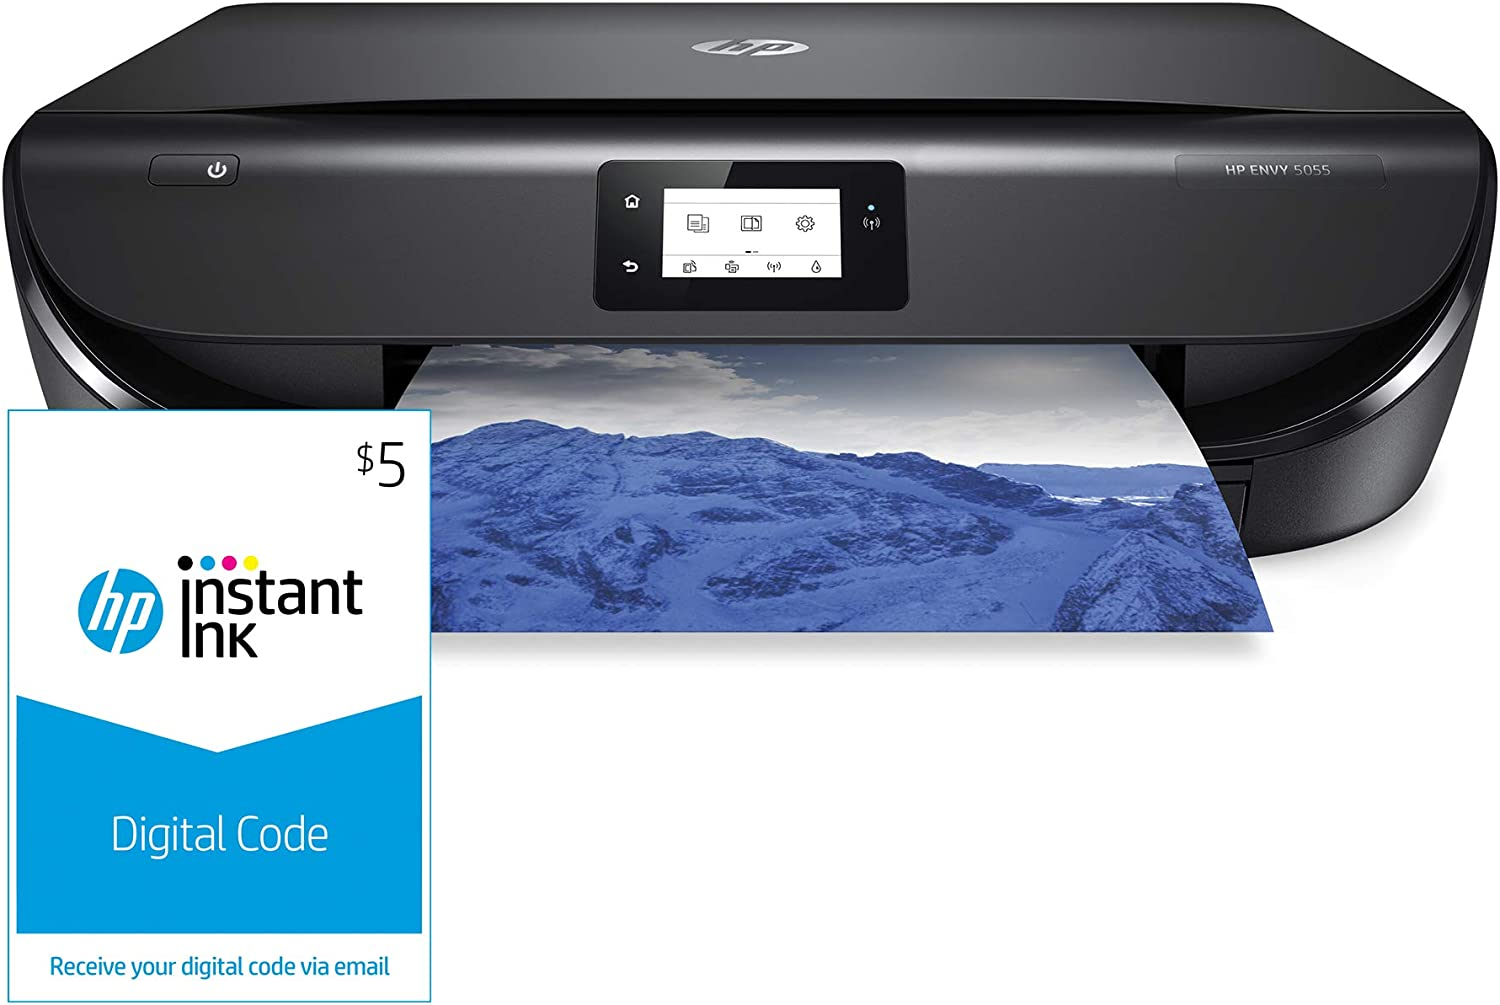 HP ENVY 5055 Wireless All-in-One Photo Printer, HP Instant Ink & Amazon Dash Replenishment ready (M2U85A) and Instant Ink $5 Prepaid Code